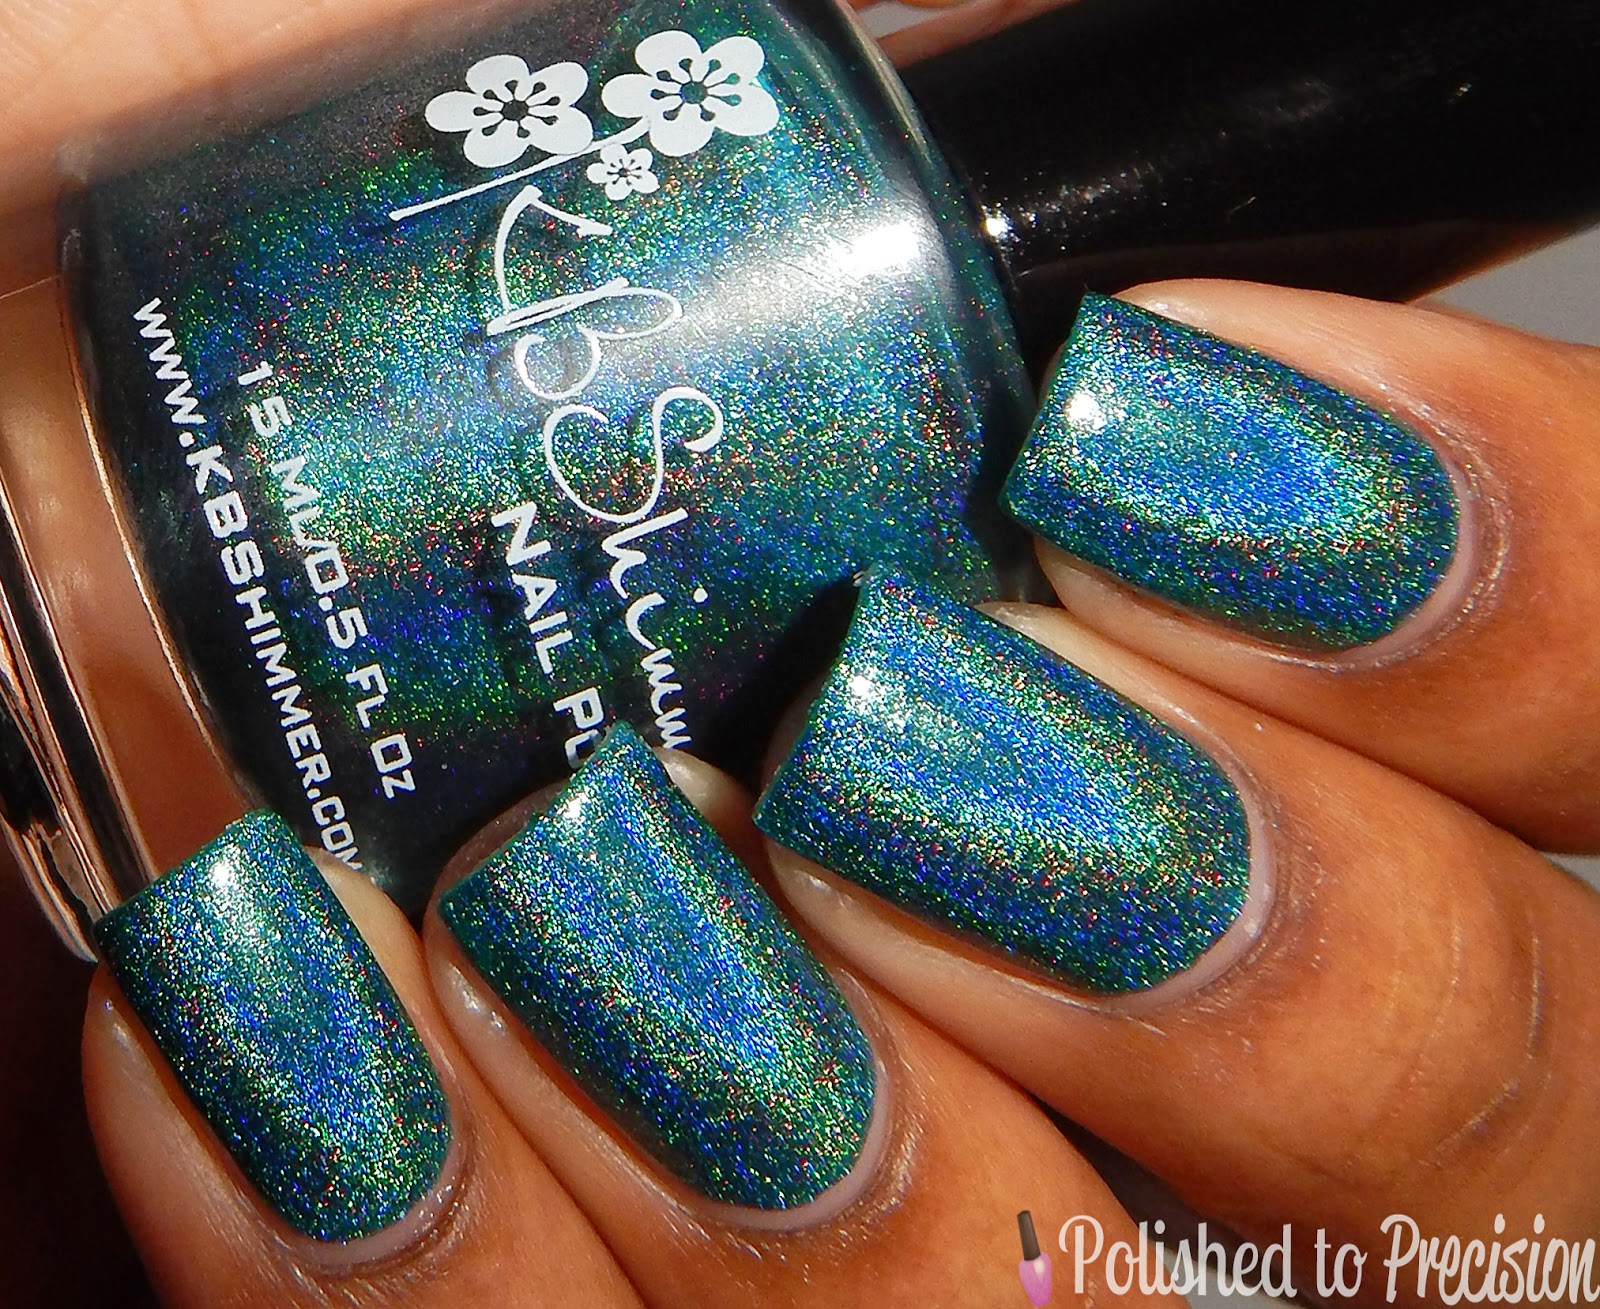 KBShimmer Up and Cunning